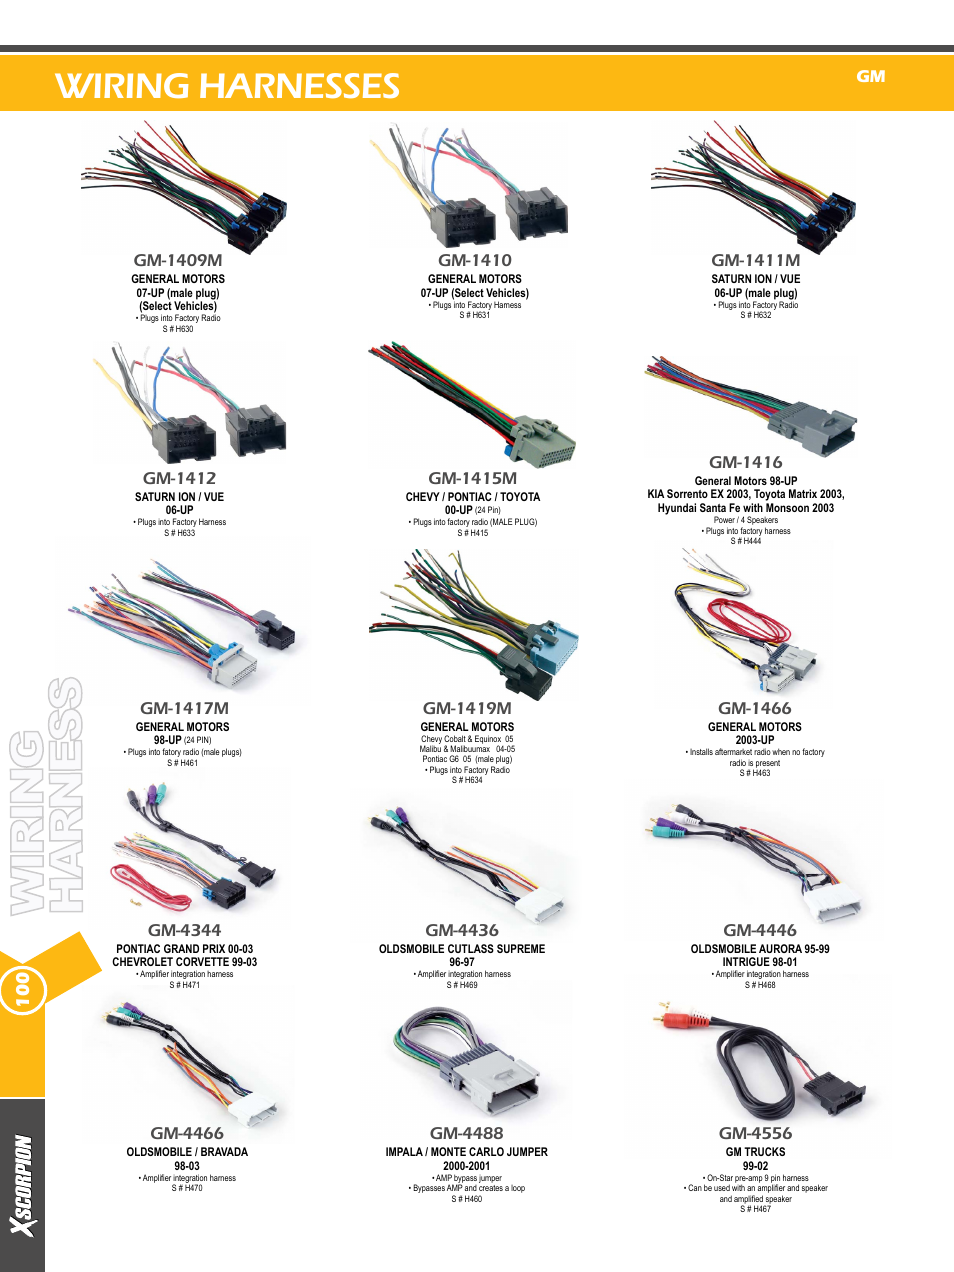 Wiring harnesses, Gm-4344, Gm-1415m | Xscorpion Dash kit, Harness and  Antenna Catalog User Manual | Page 100 / 116